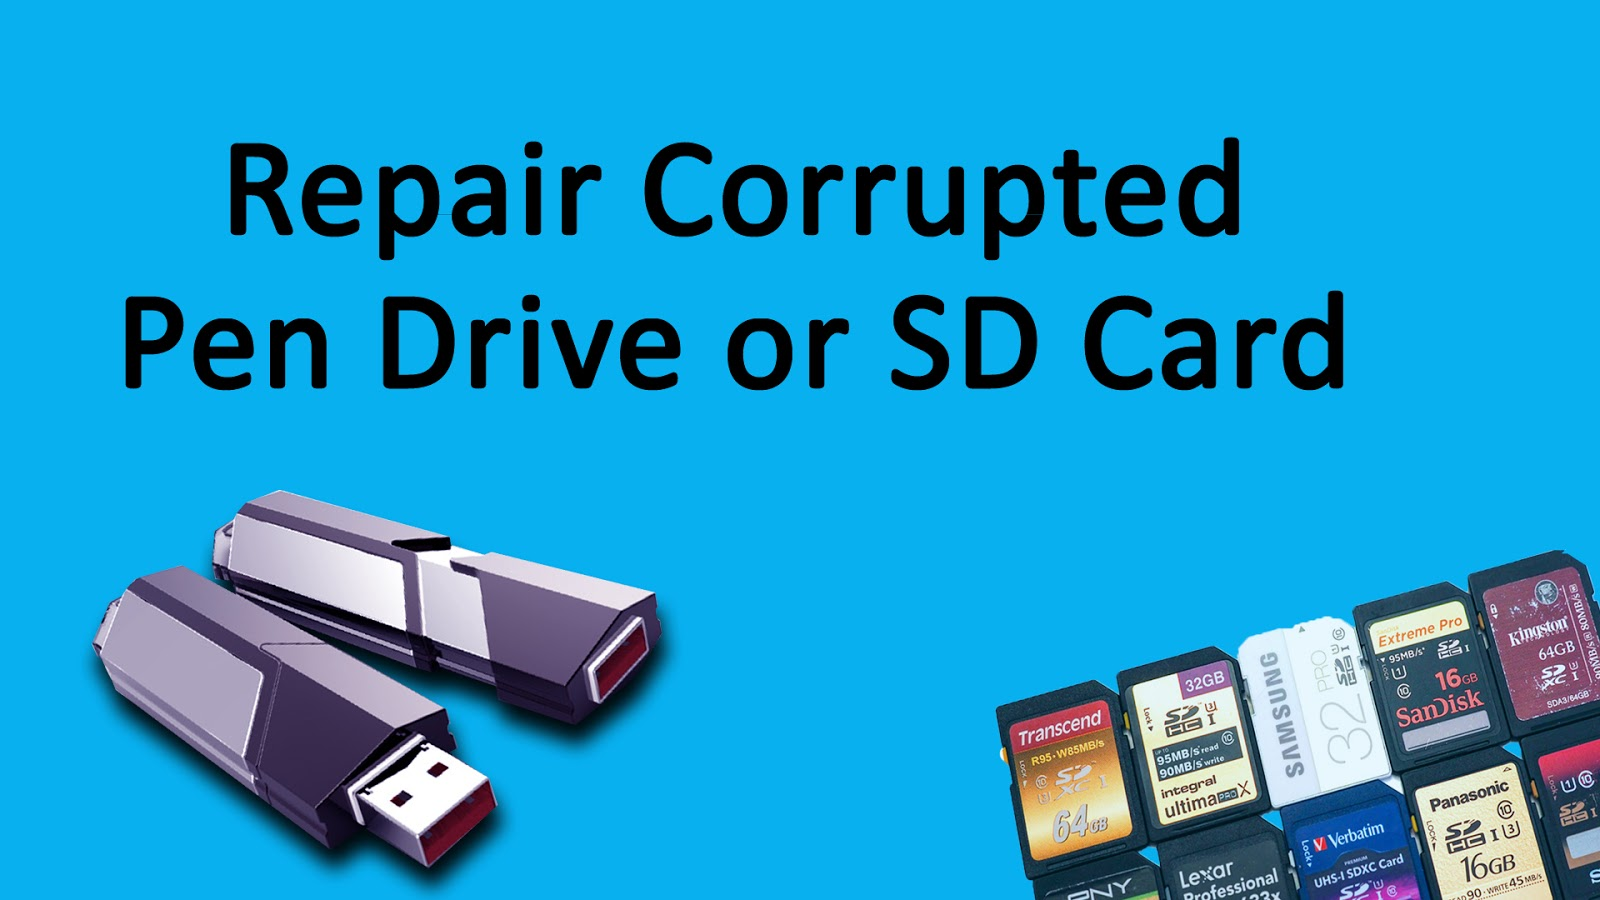 How To Repair Corrupted Pen Drive or SD Card